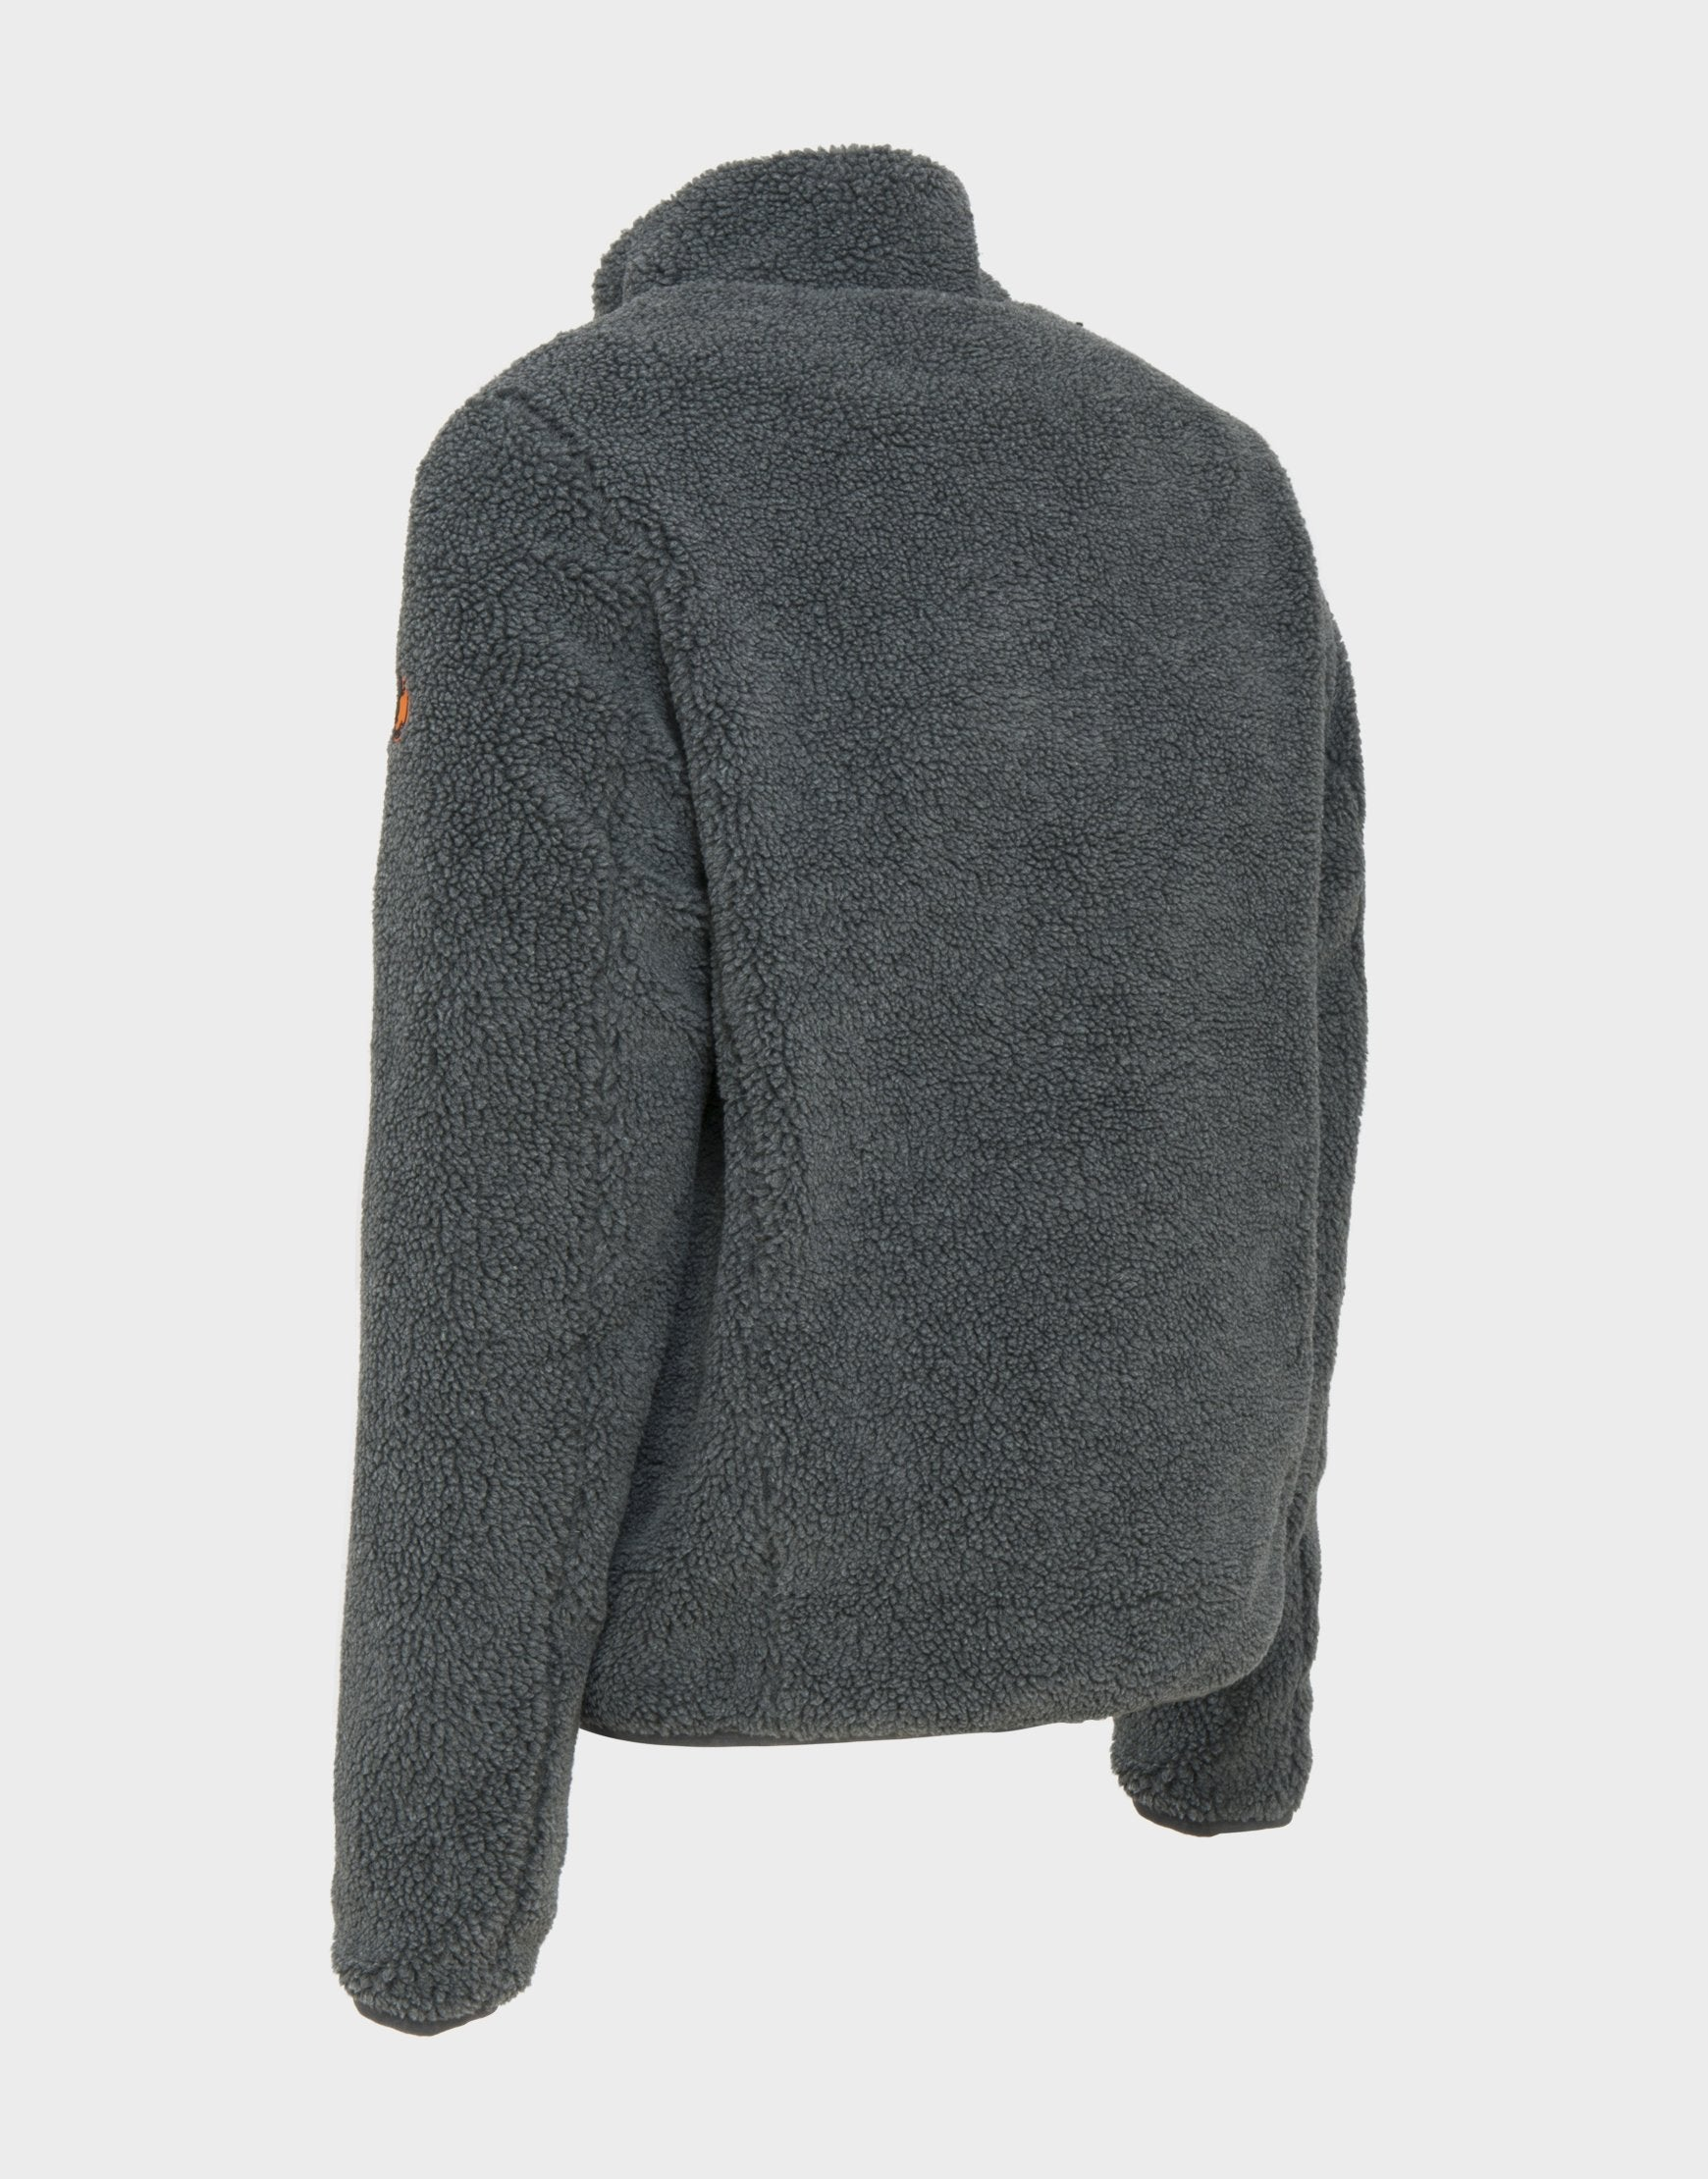 Men's Fleece Jacket in BEAR